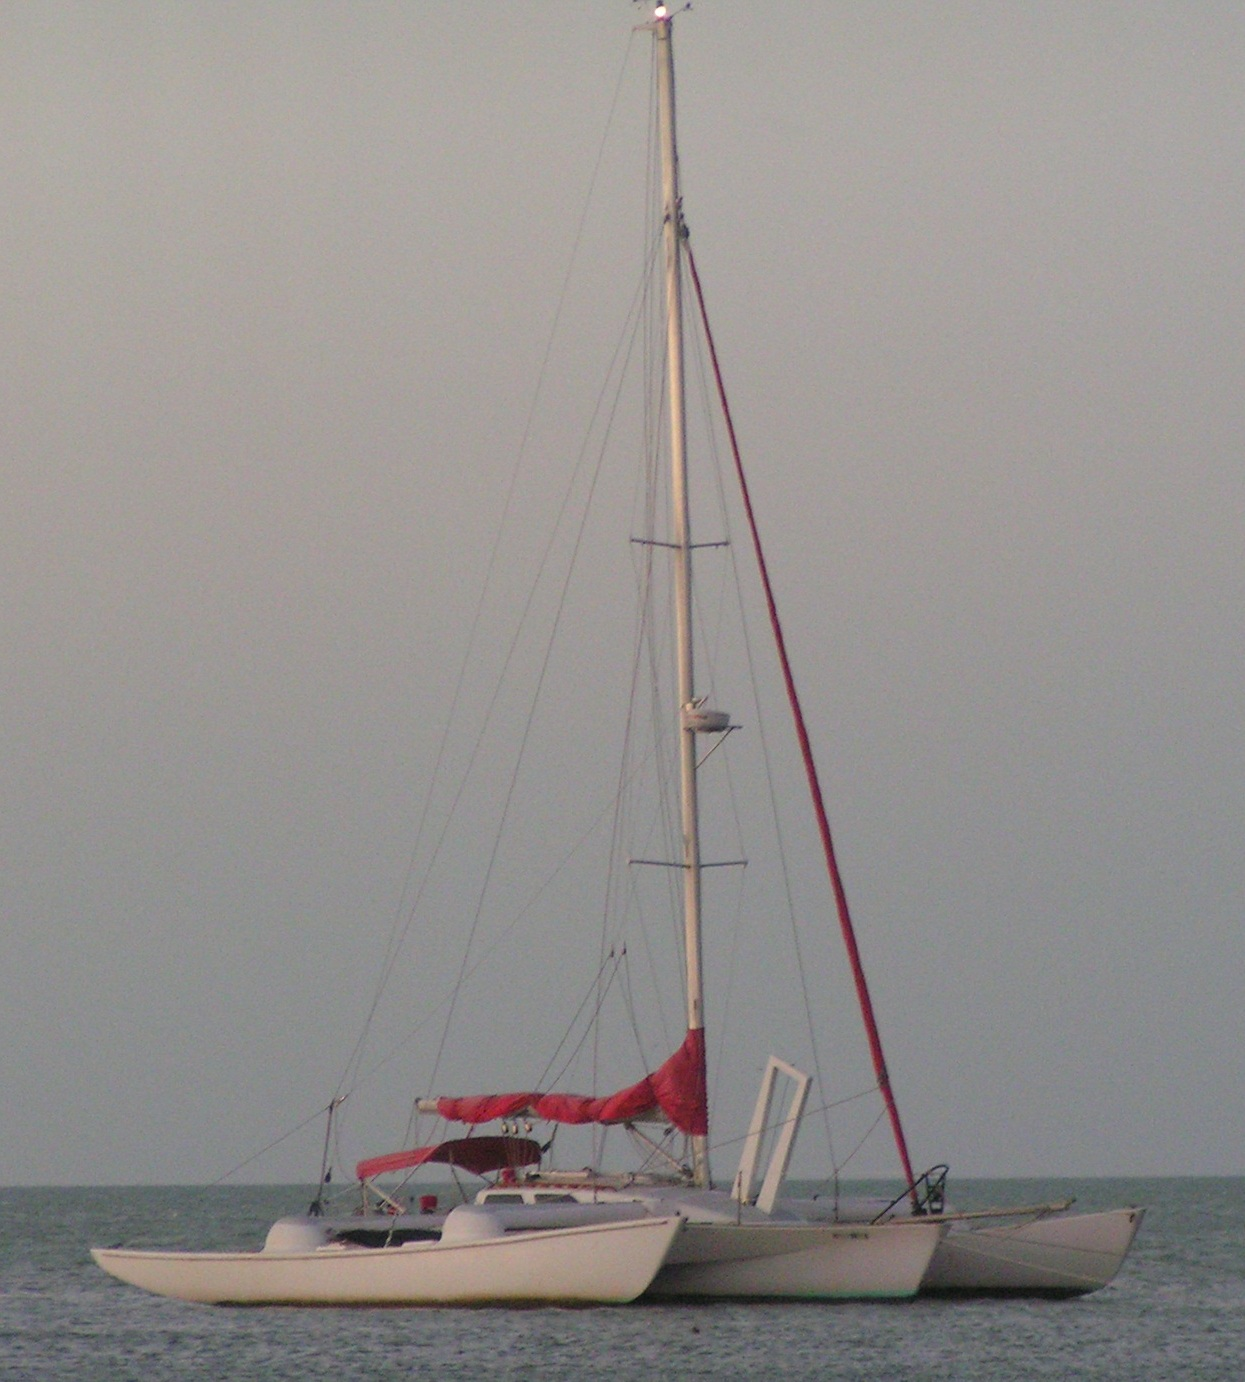 Condor 40 at anchor - for sale 75.000,-US$ 956-943-5150